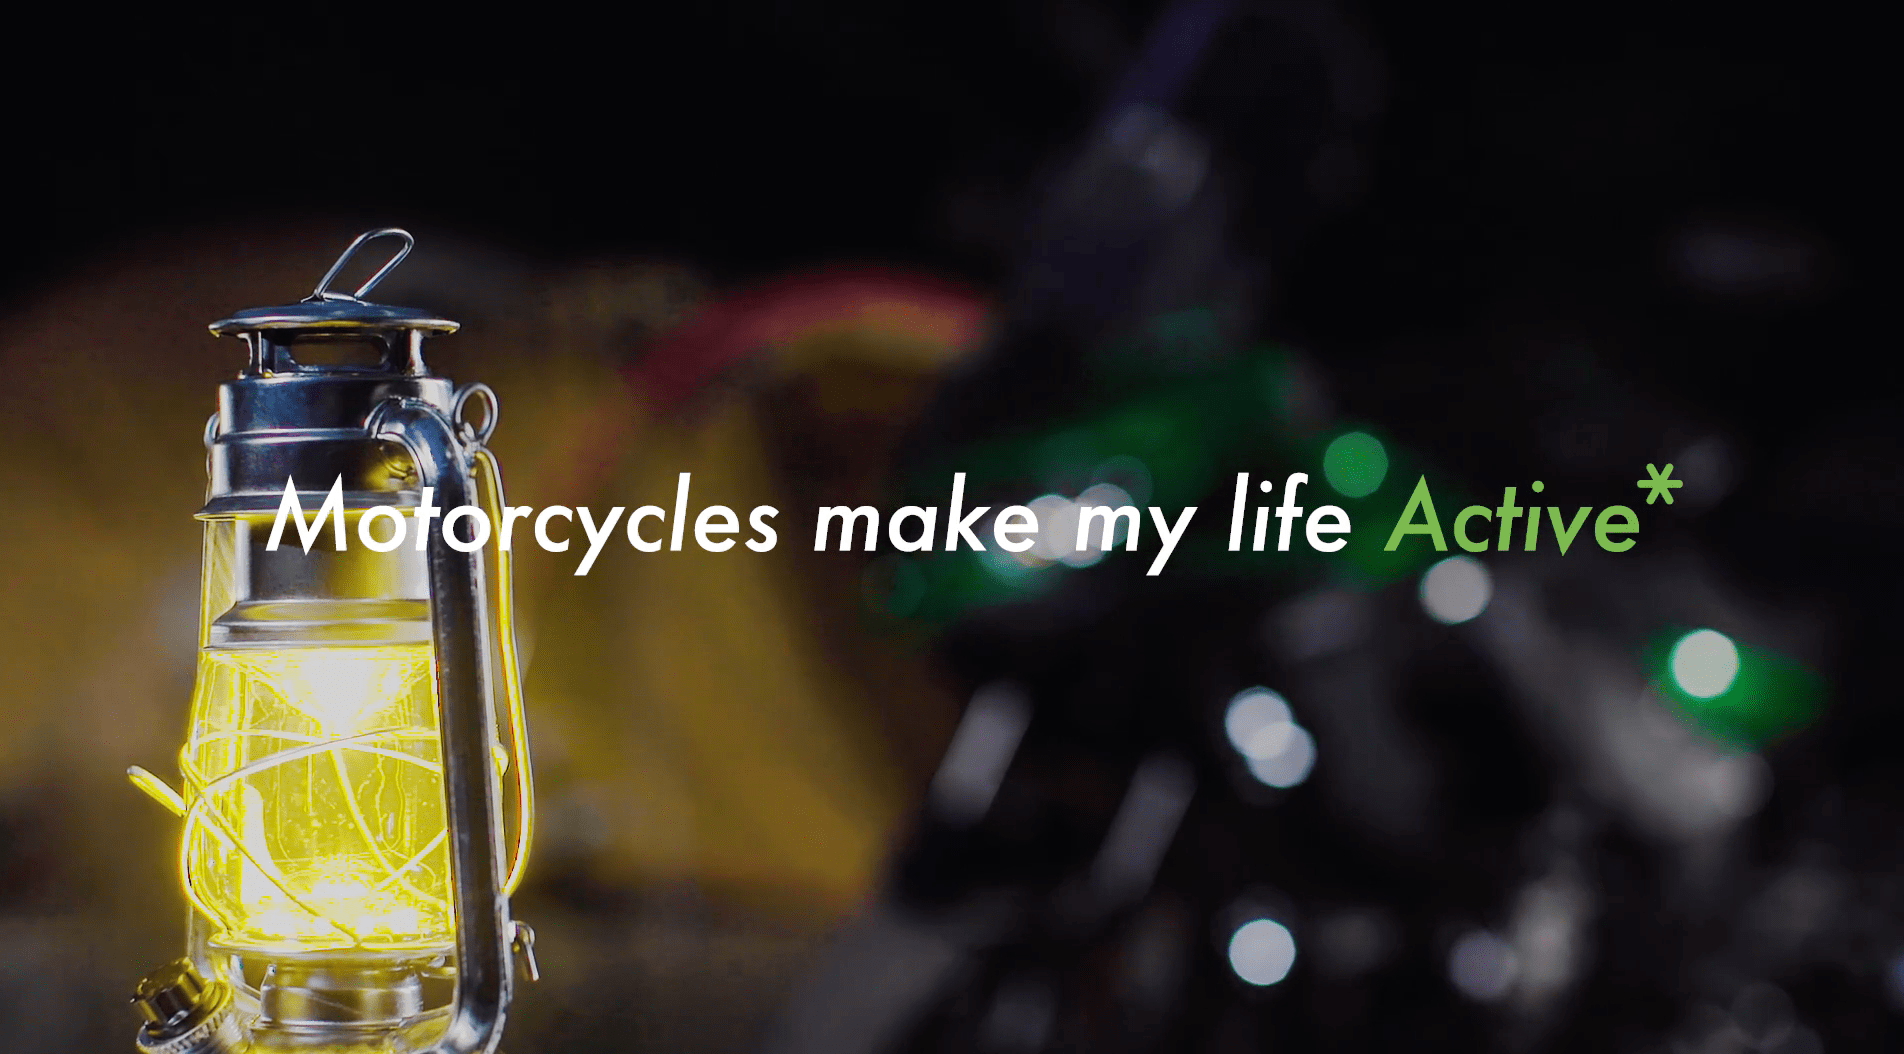 Kawasaki Motorcycles make my life Active